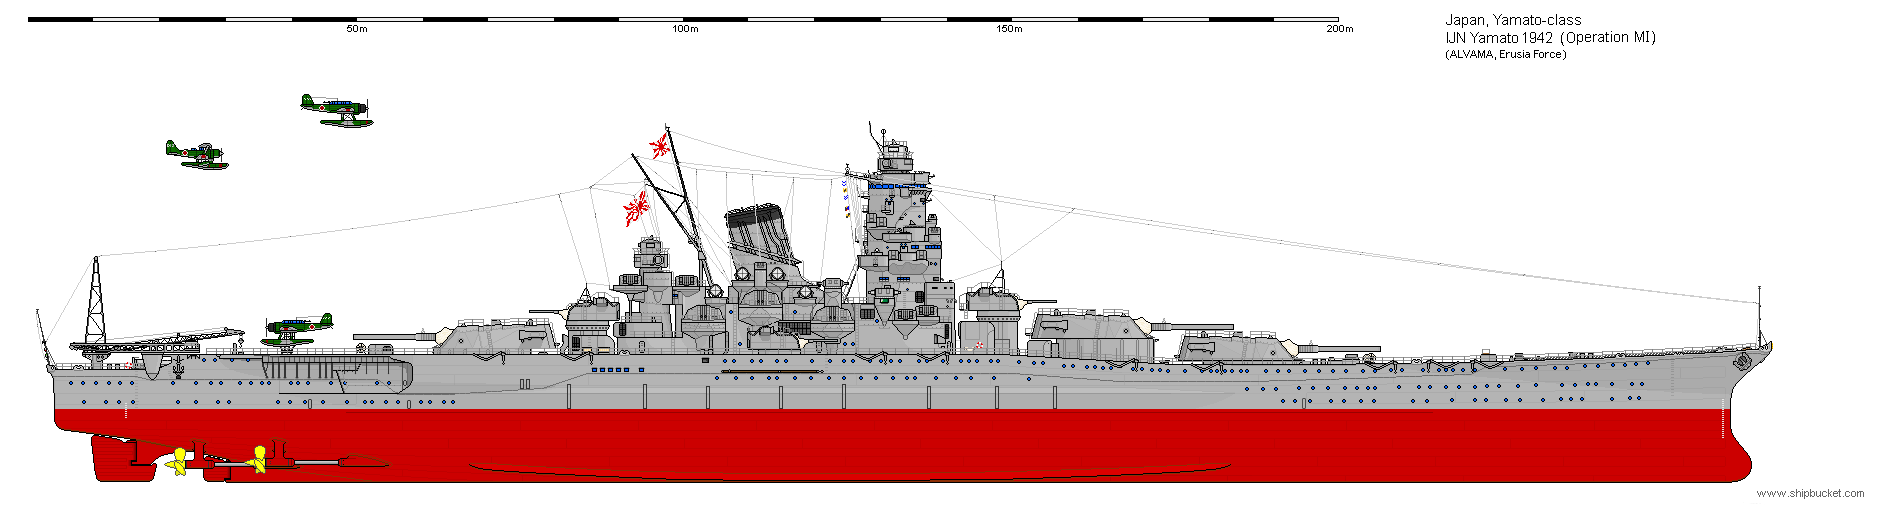 leyte imperial japanese navy musashi battleship military history wwii charts [ 1878 x 505 Pixel ]